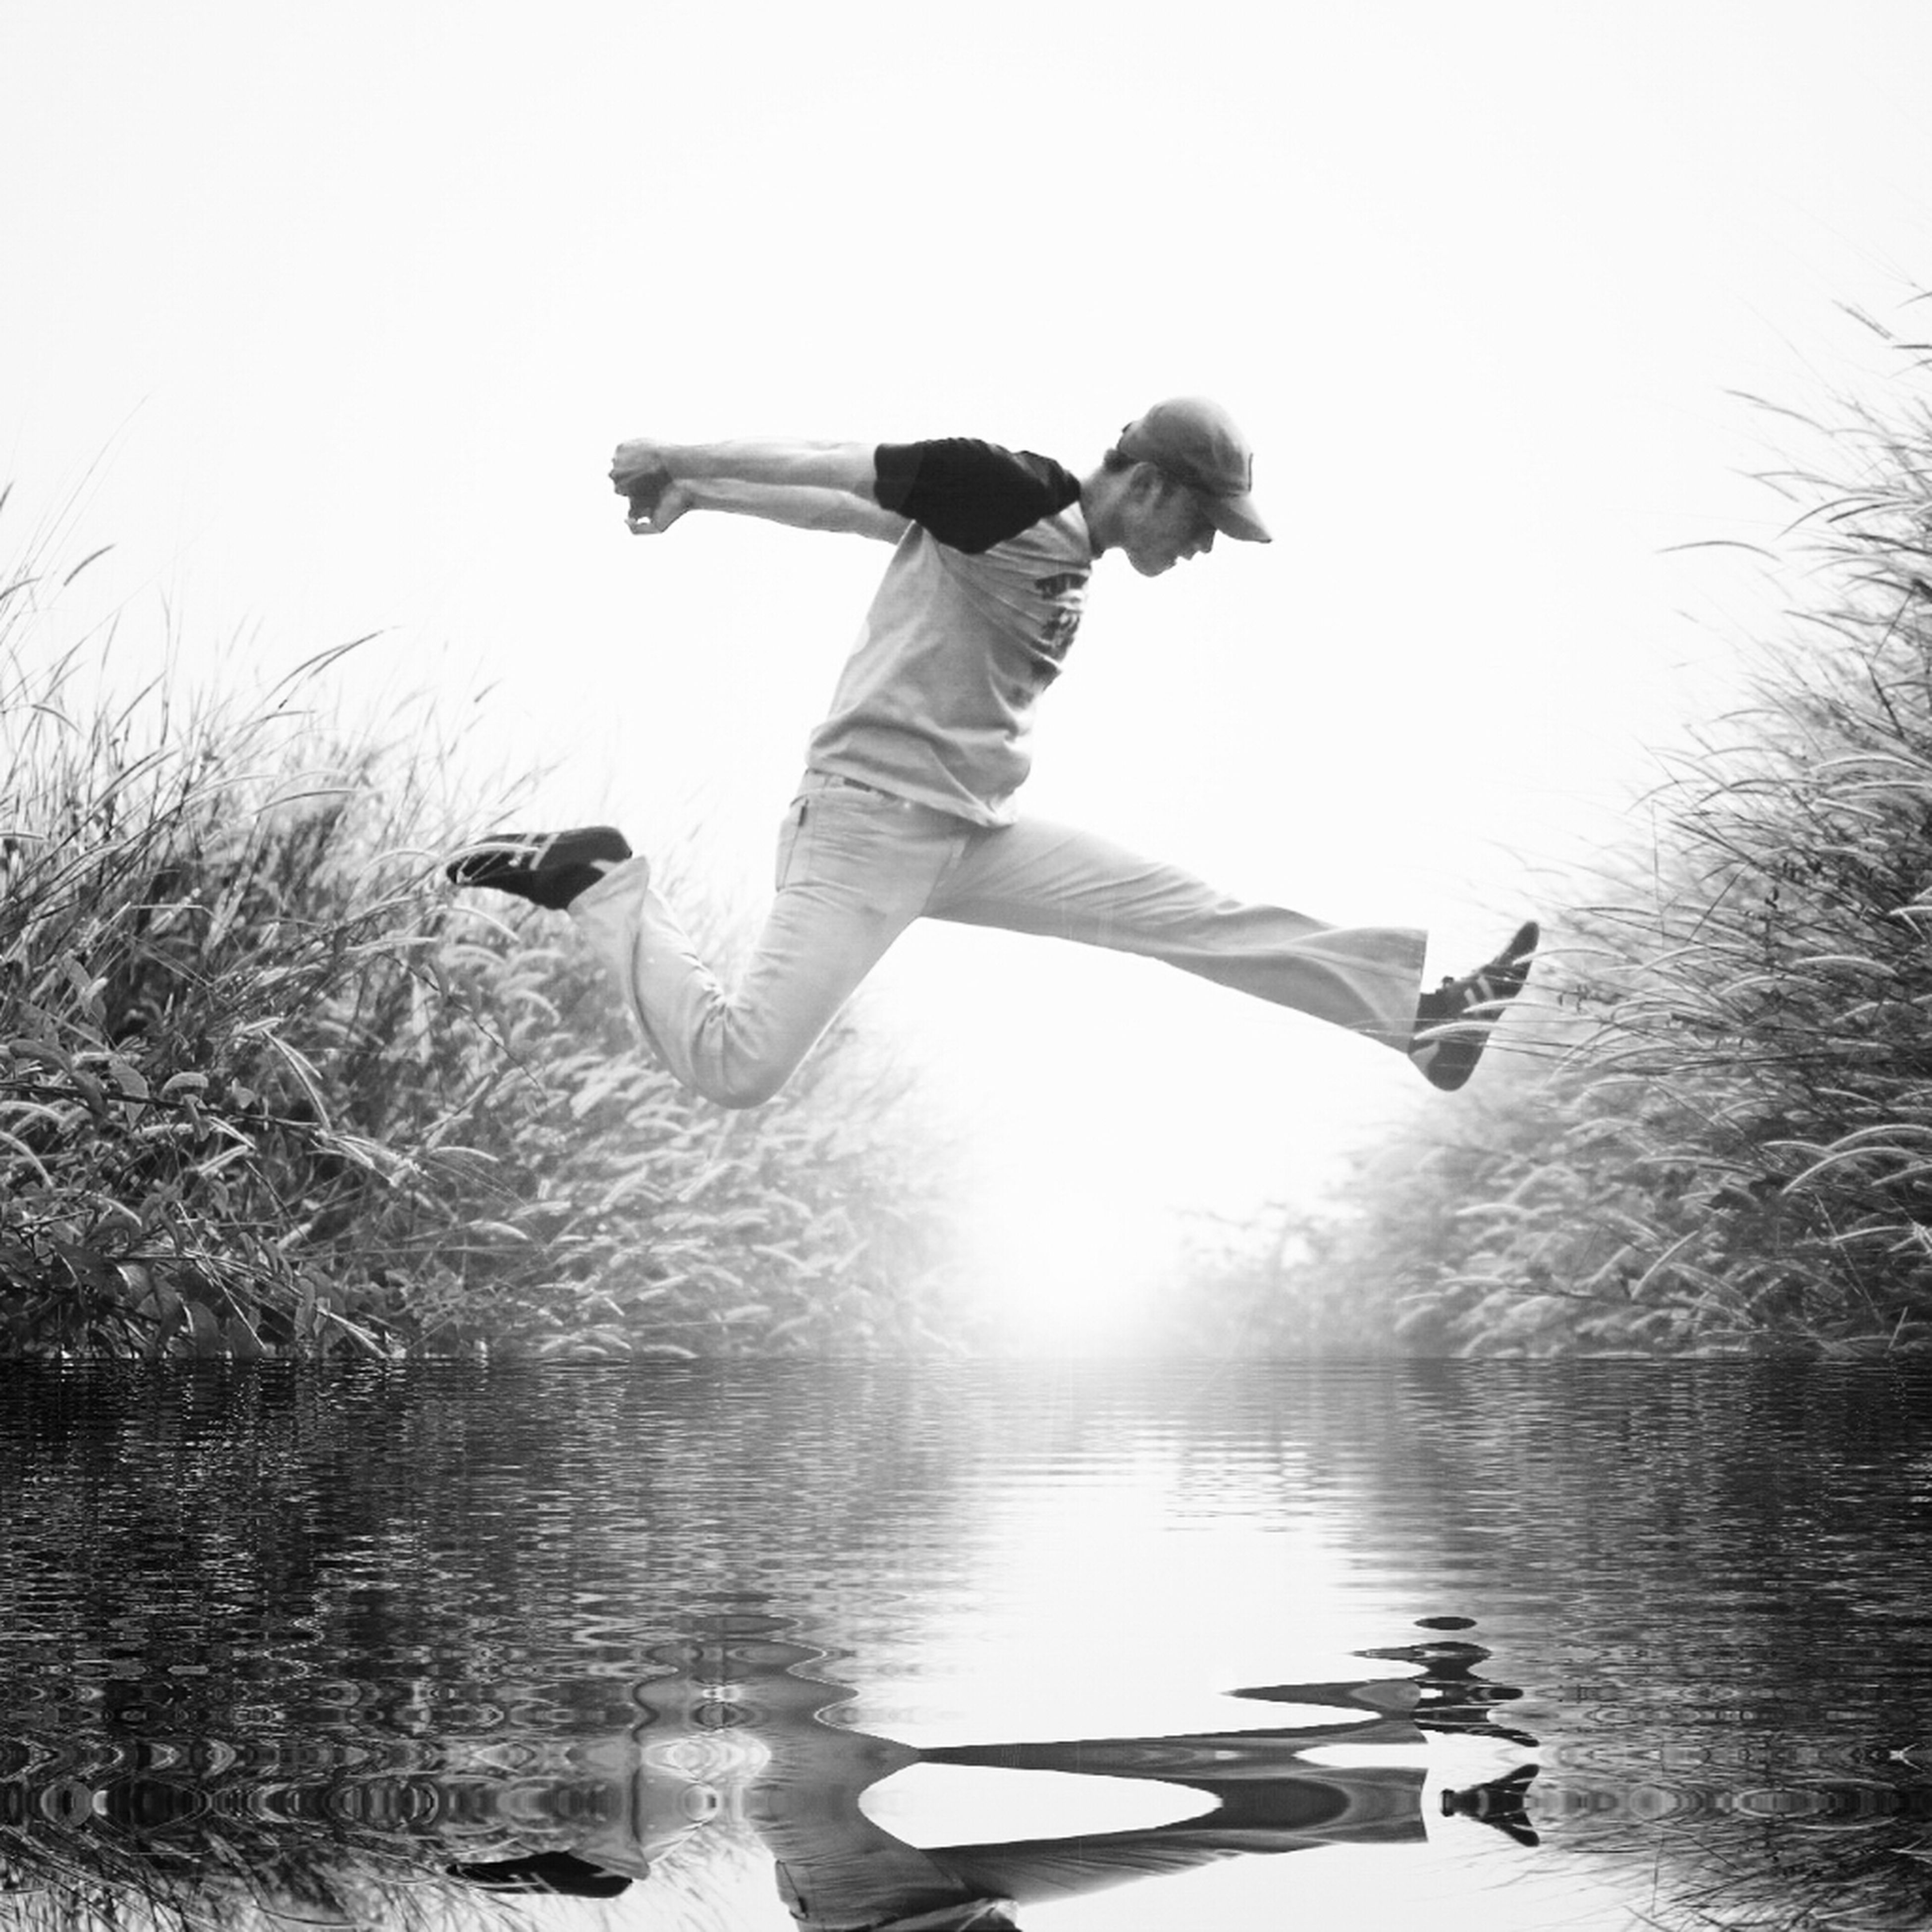 water, lifestyles, full length, leisure activity, mid-air, lake, jumping, waterfront, reflection, clear sky, arms outstretched, nature, tree, men, casual clothing, young adult, river, tranquility